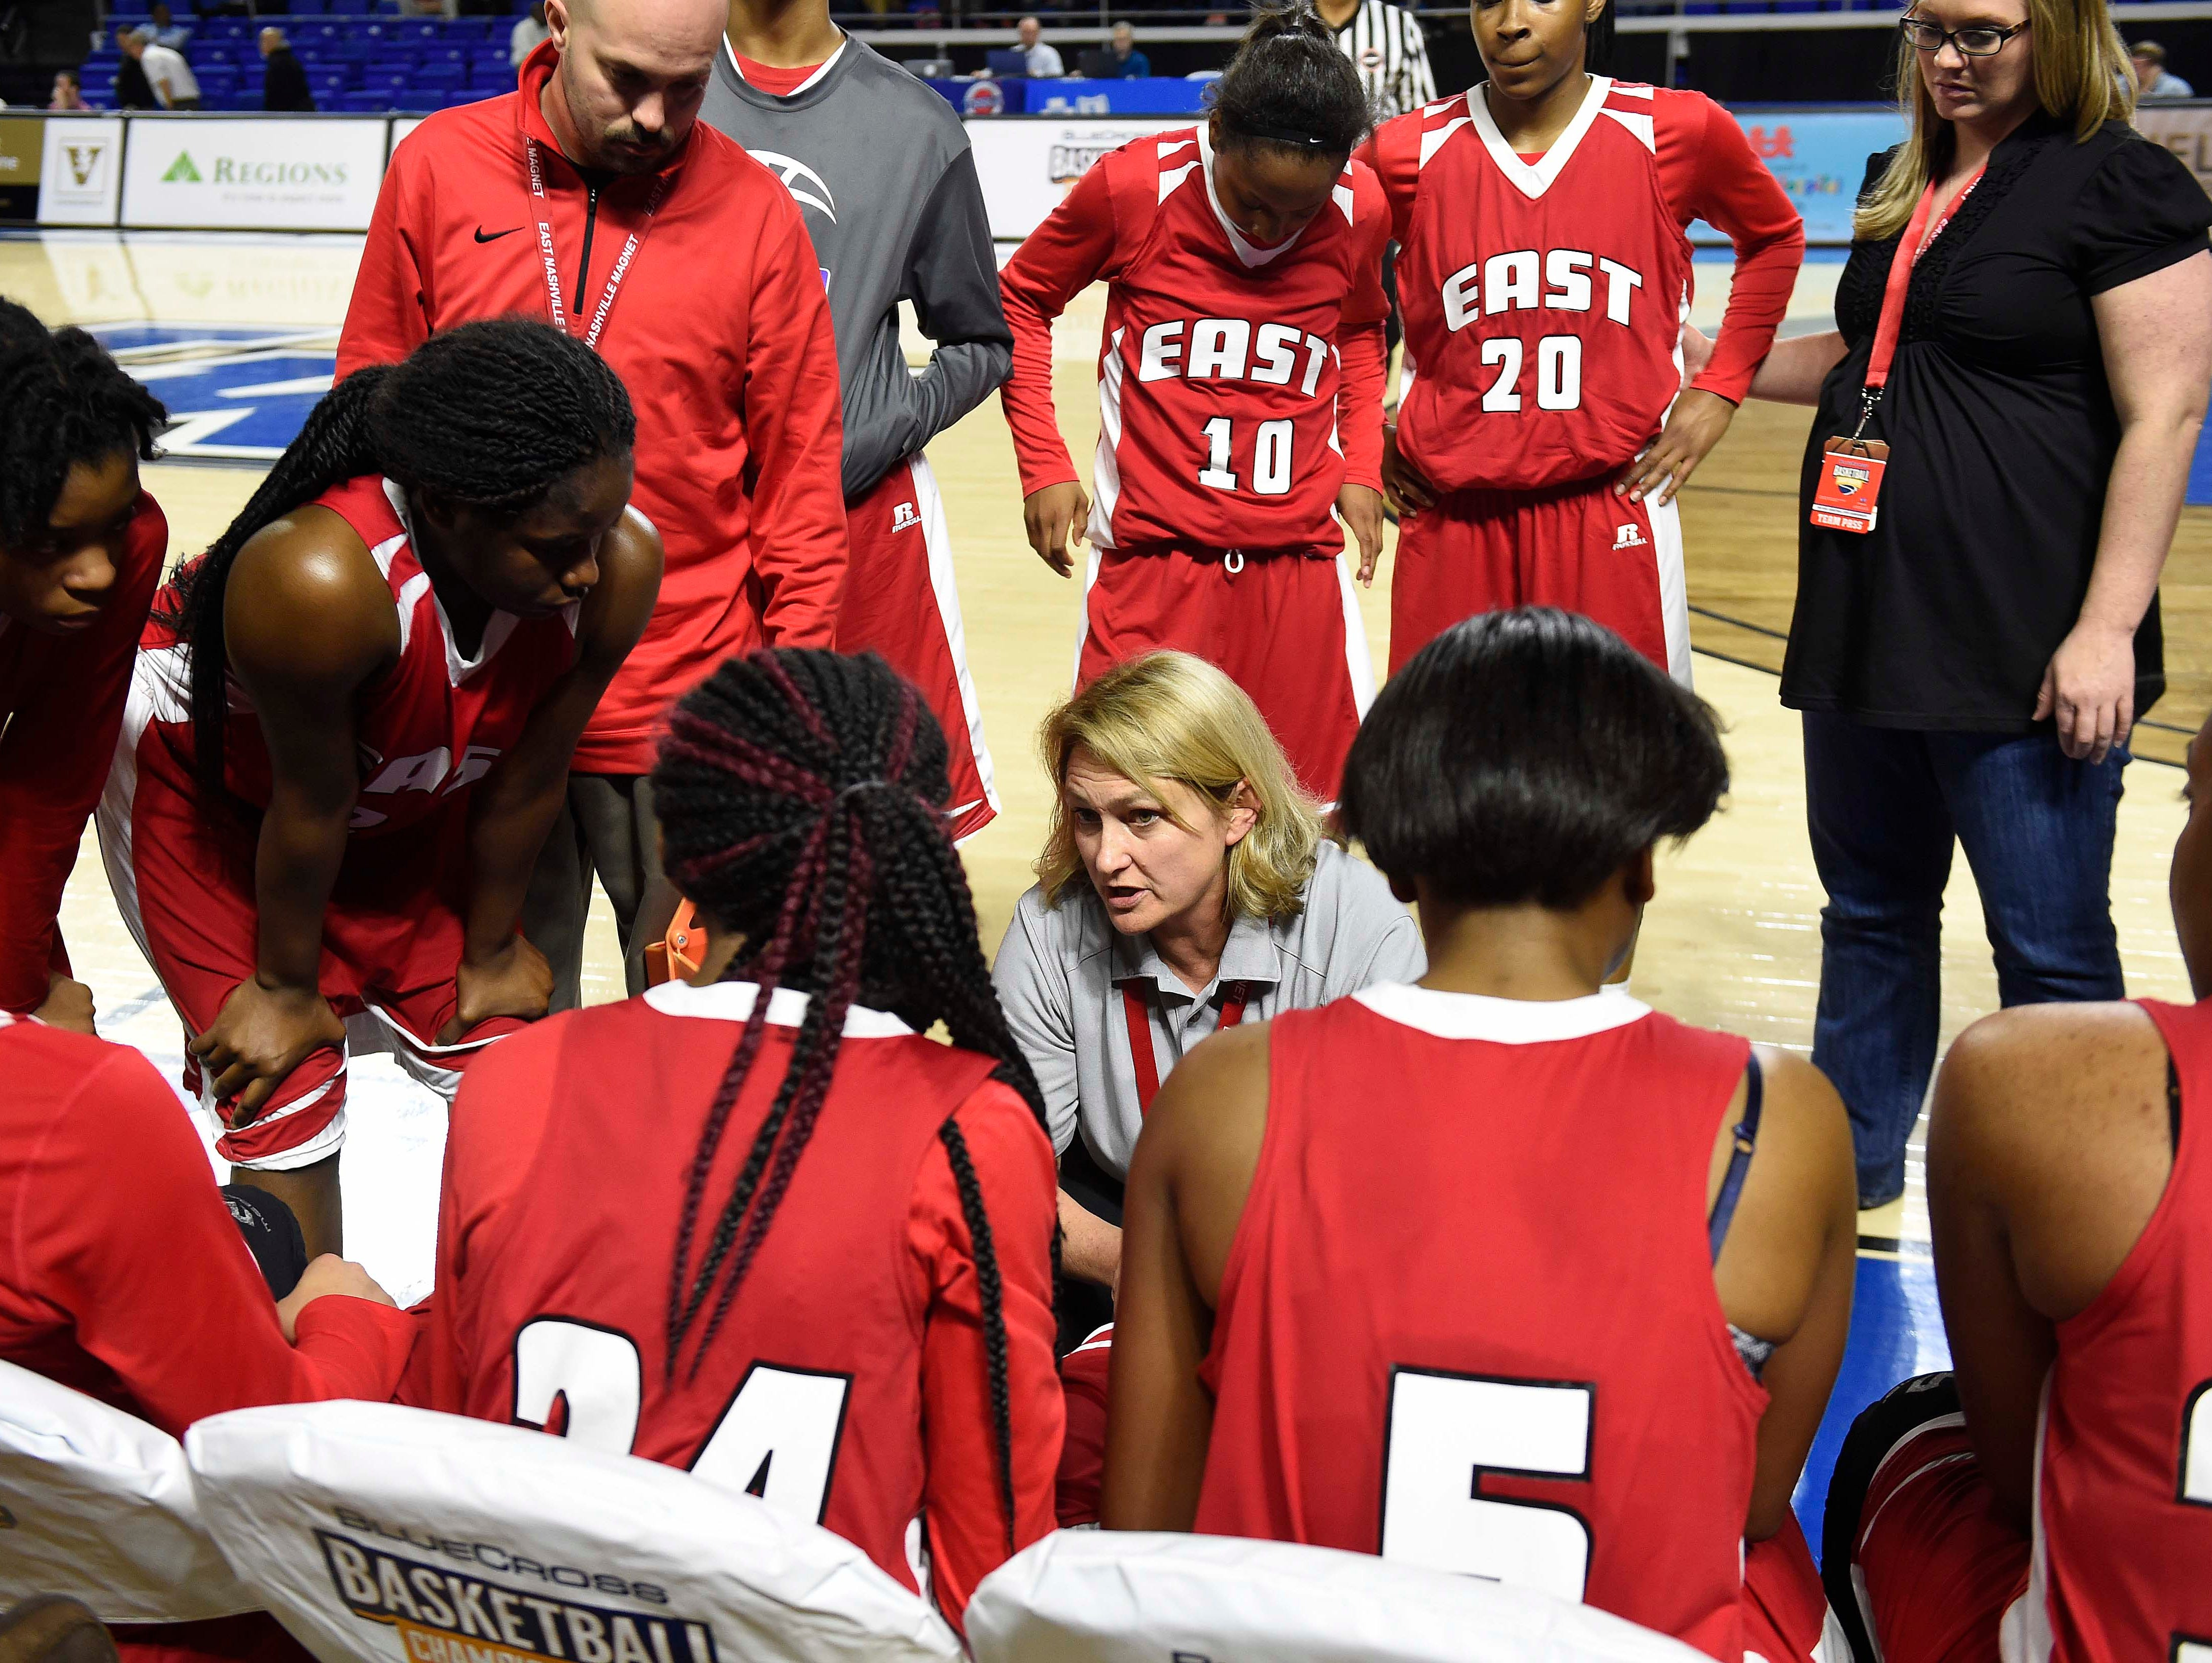 East Nashville coach Lois Donaldson talks to her team during a time out as they win over Westview High School 35-32 in the Division I Class AA Girl's basketball semi-finals at the Murphy Center on MTSU's campus March 11, 2016 in Murfreesboro, Tenn.